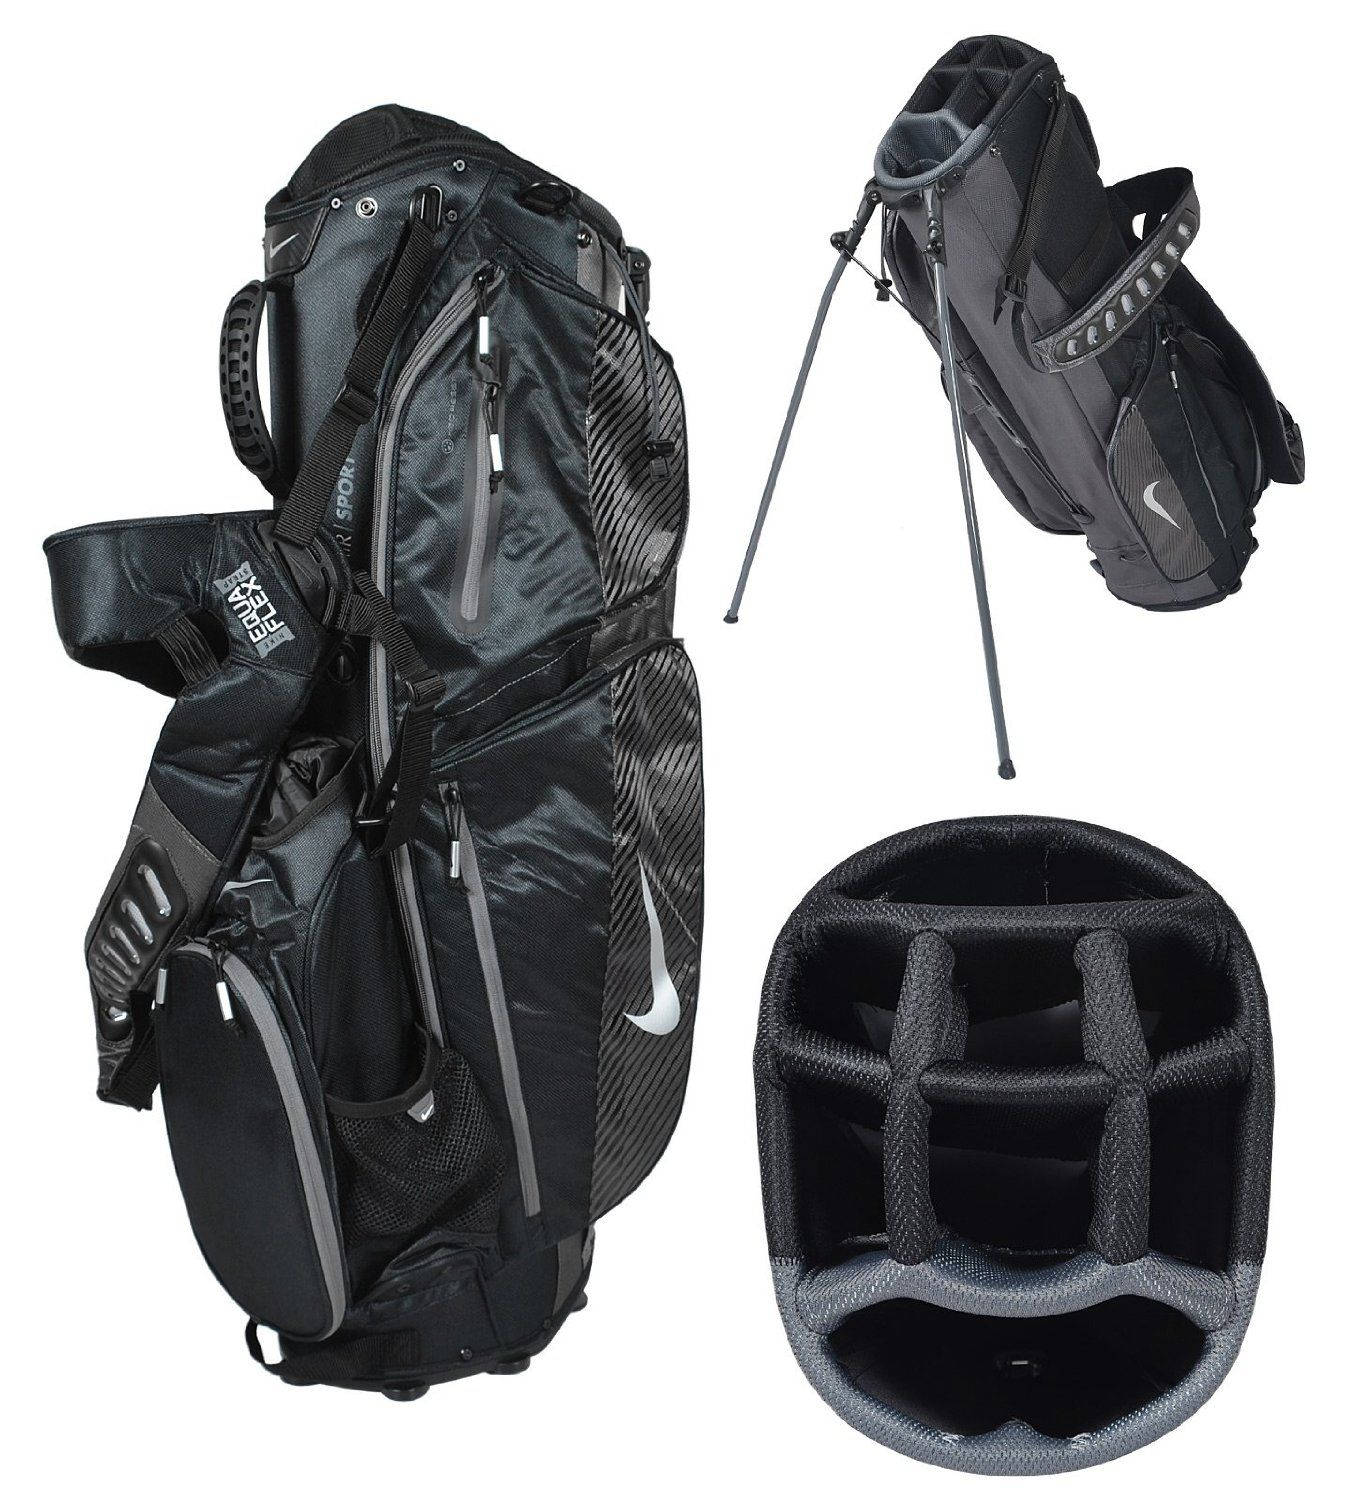 2014 Nike Air Sport Carry Stand Golf Bag 8-Way Divider -New for 2014  Military Blue  Amazon.co.uk  Sports   Outdoors ffd0818f5bf